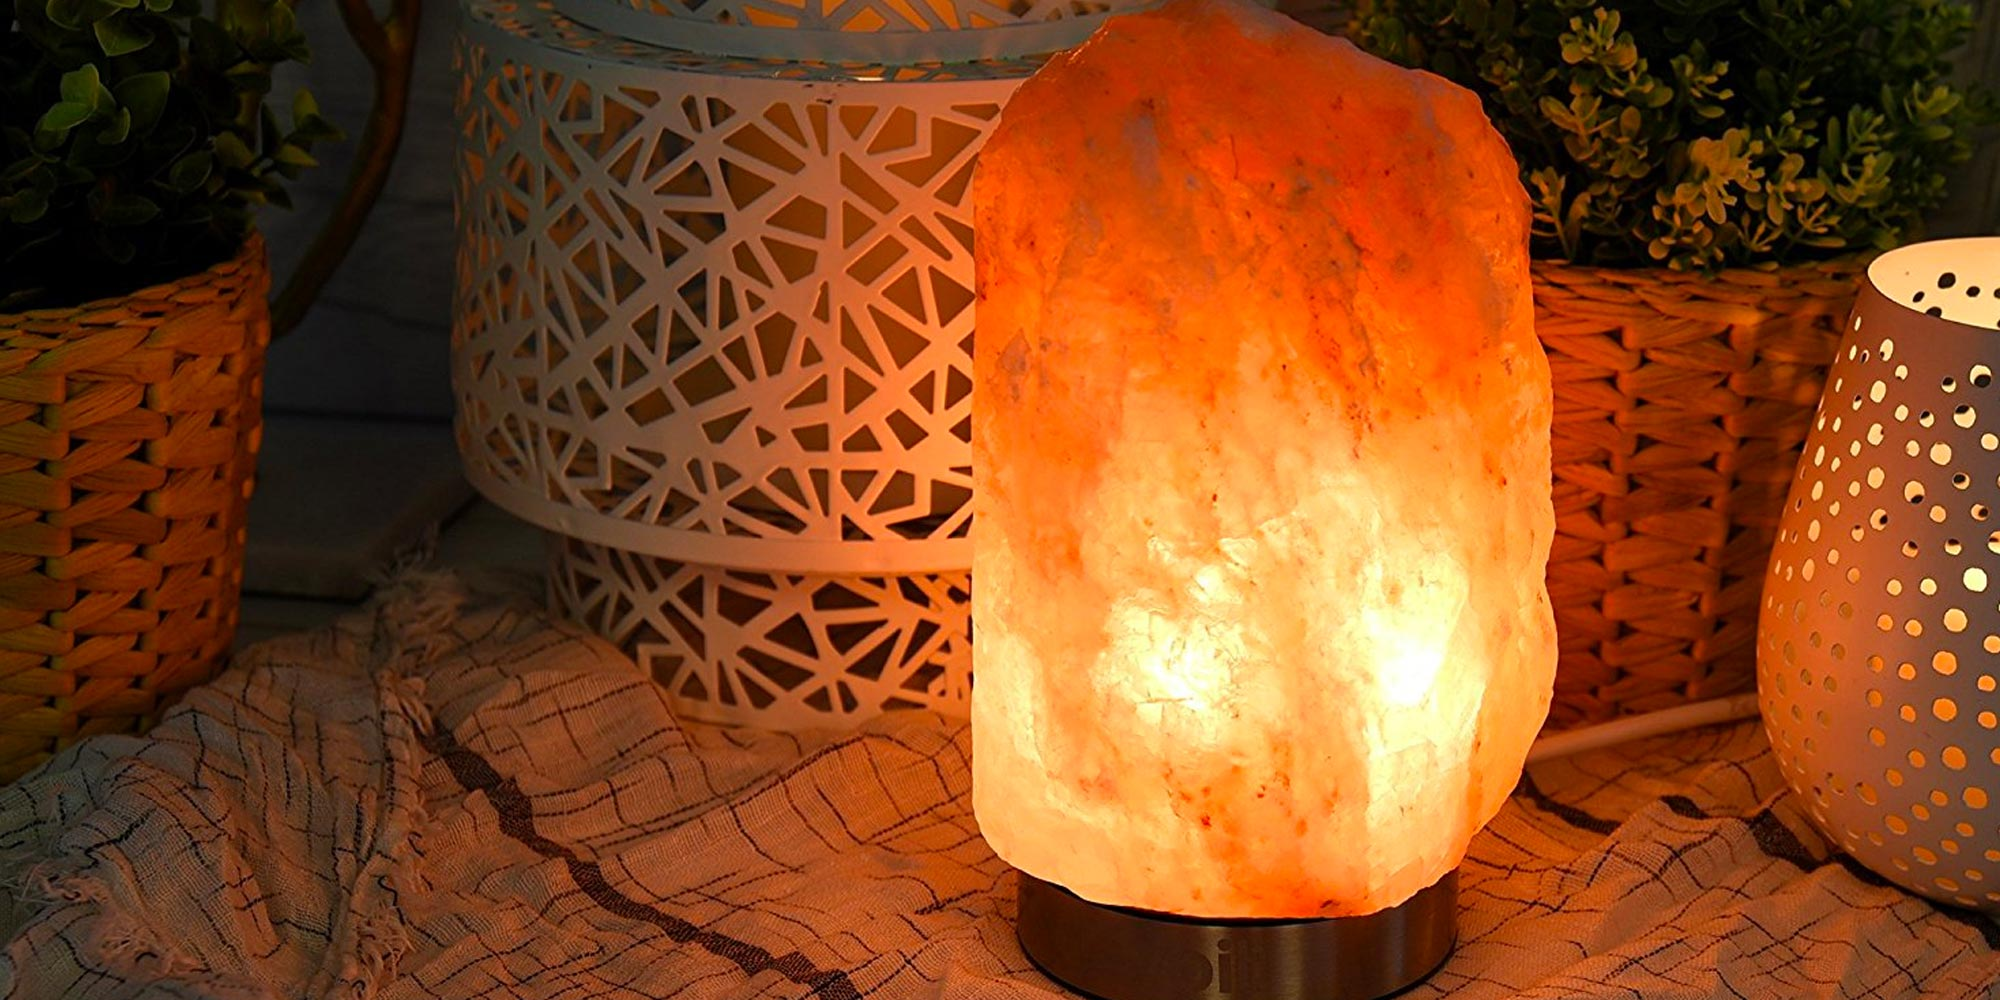 Illuminate your life w/ these Himalayan Salt Lamp deals from $30, today only